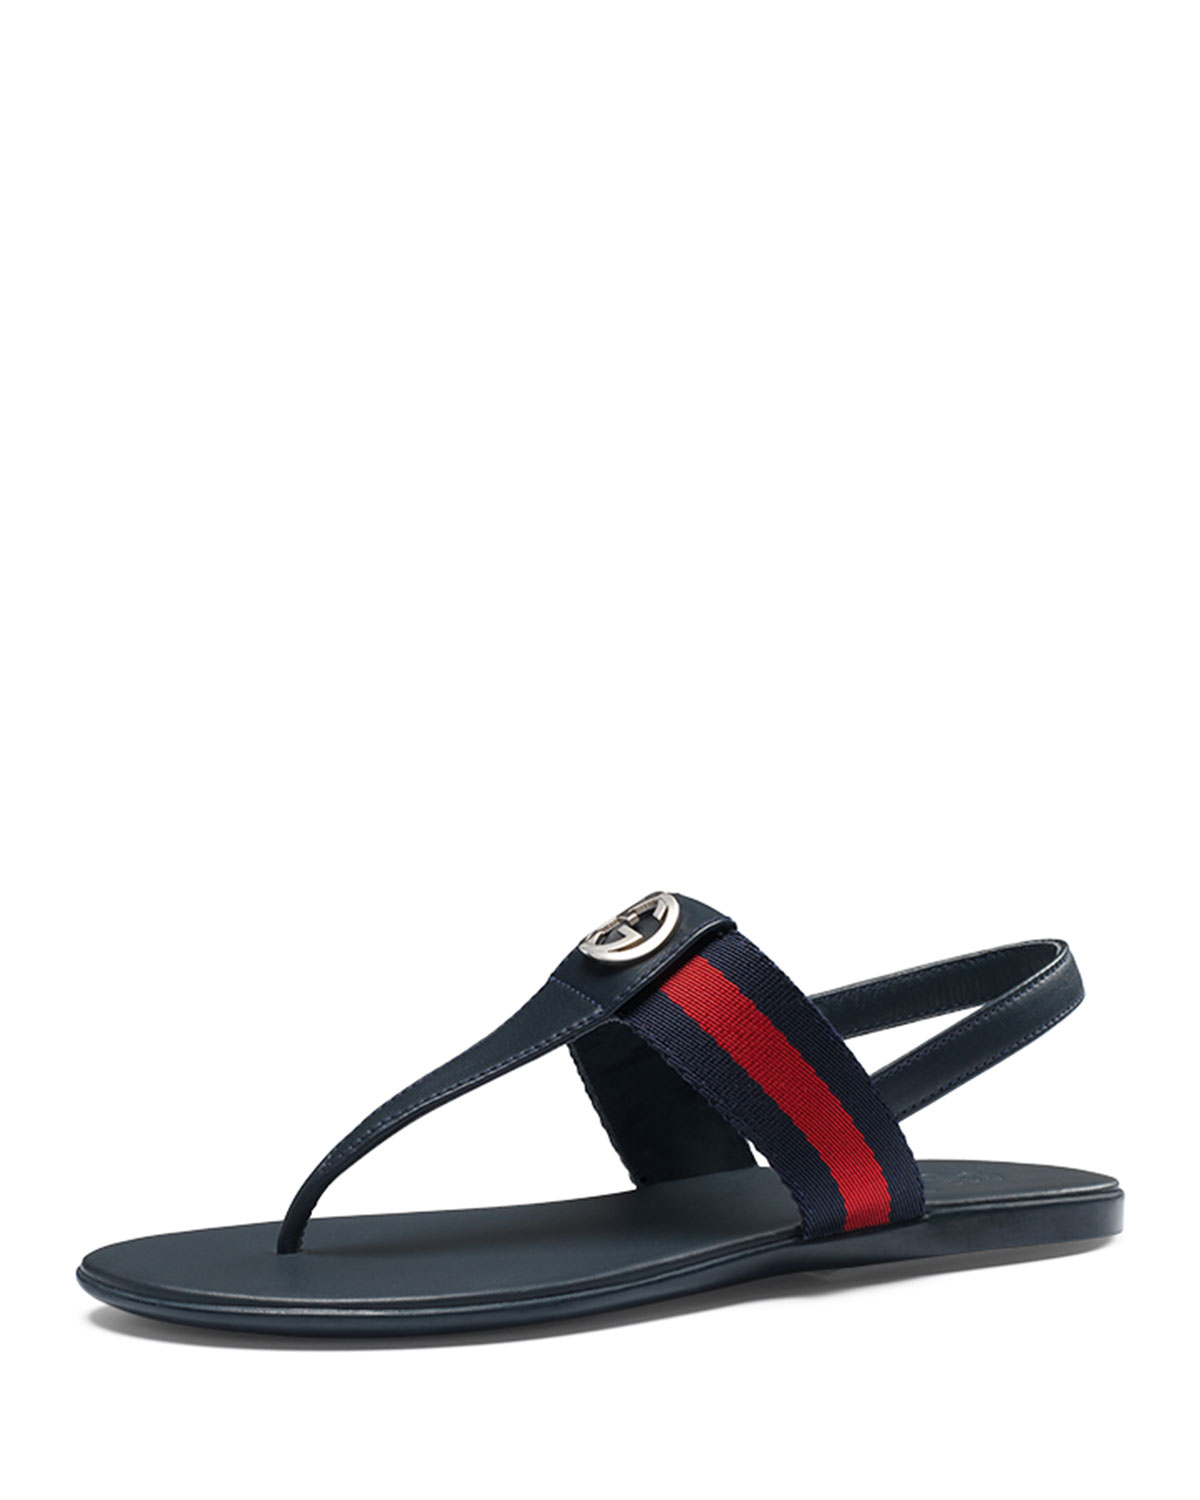 a31d1d786899aa Gucci Poppy Junior Web Leather Thong Sandal